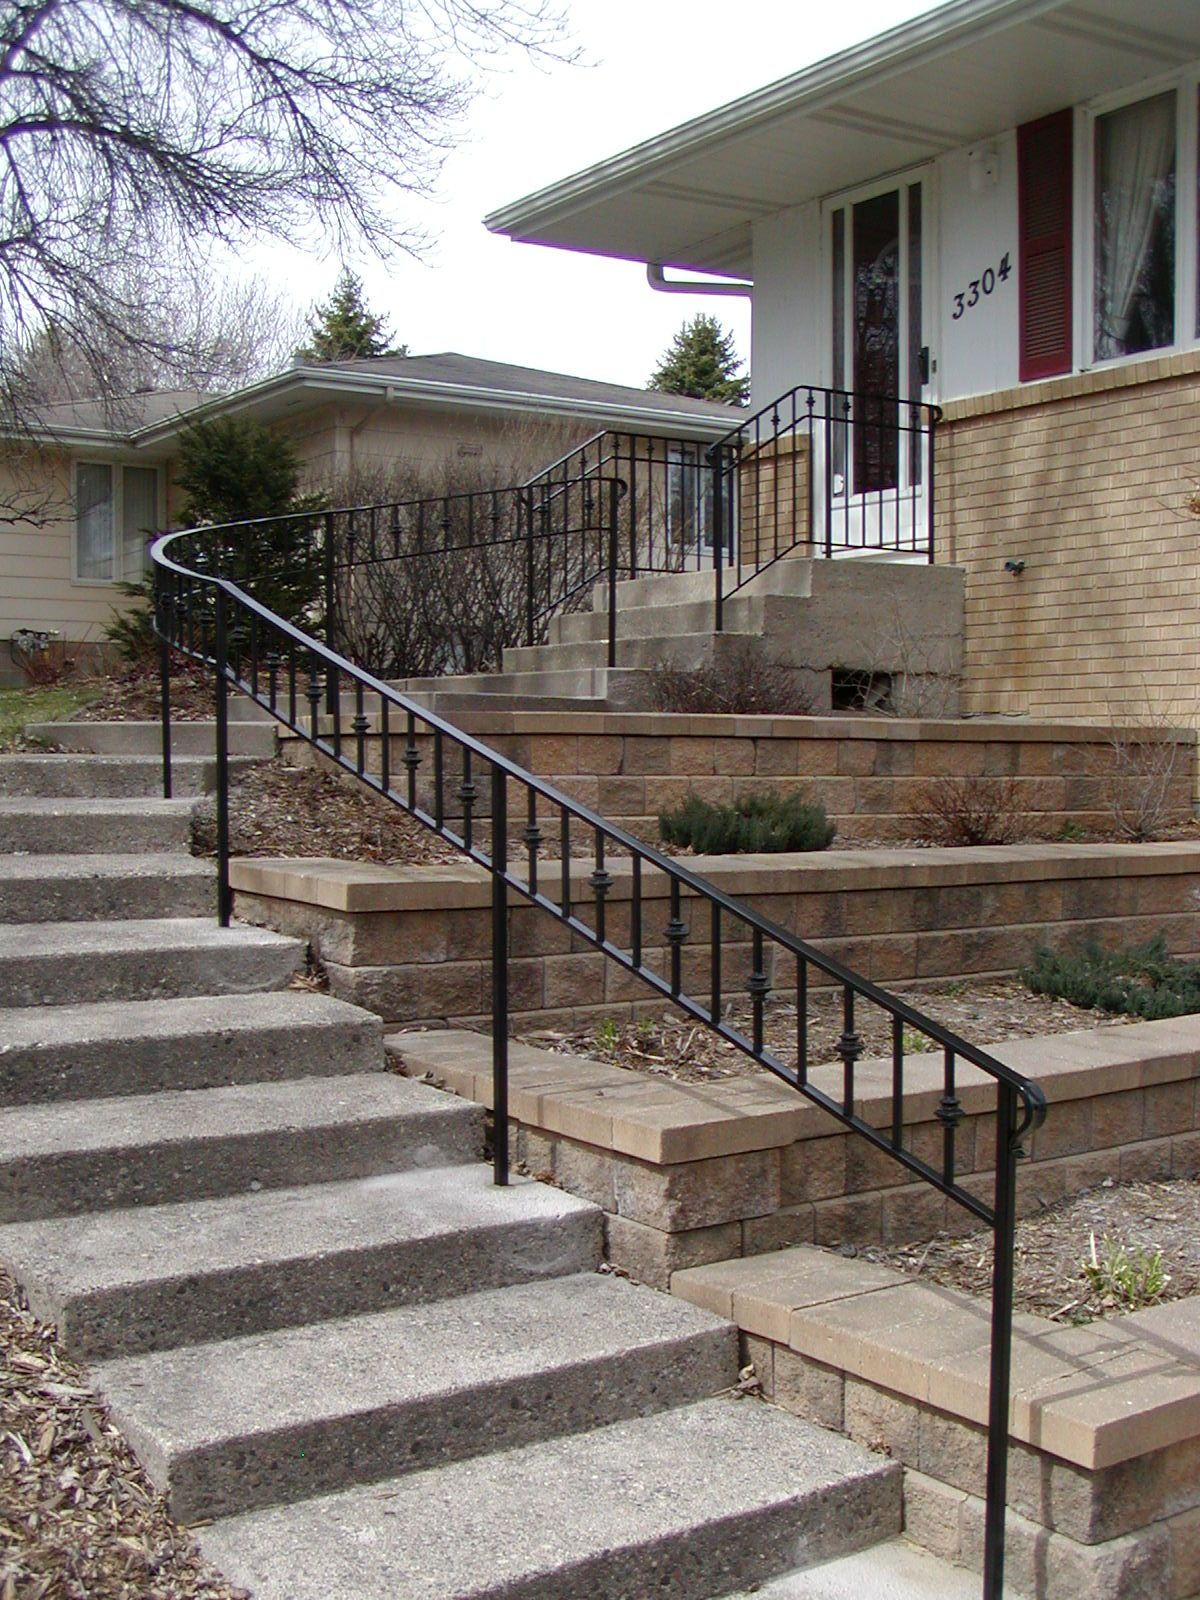 Curved Iron Step Railing Railings Outdoor Iron Railings Outdoor